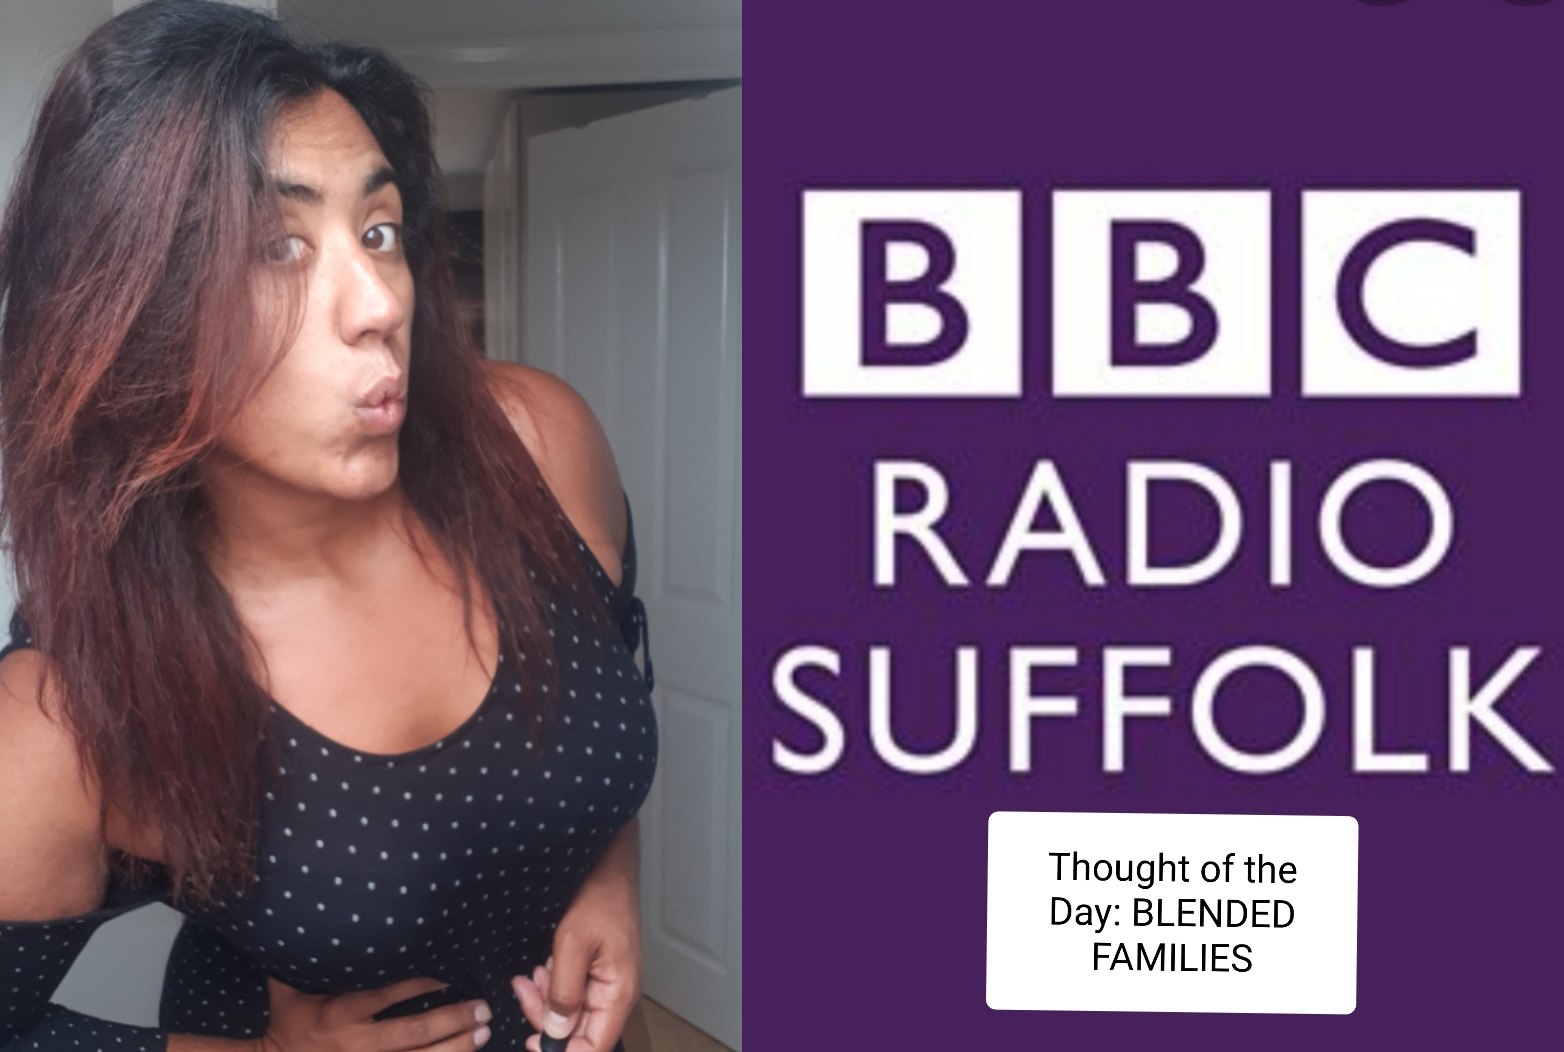 BBC Suffolk Blended Families